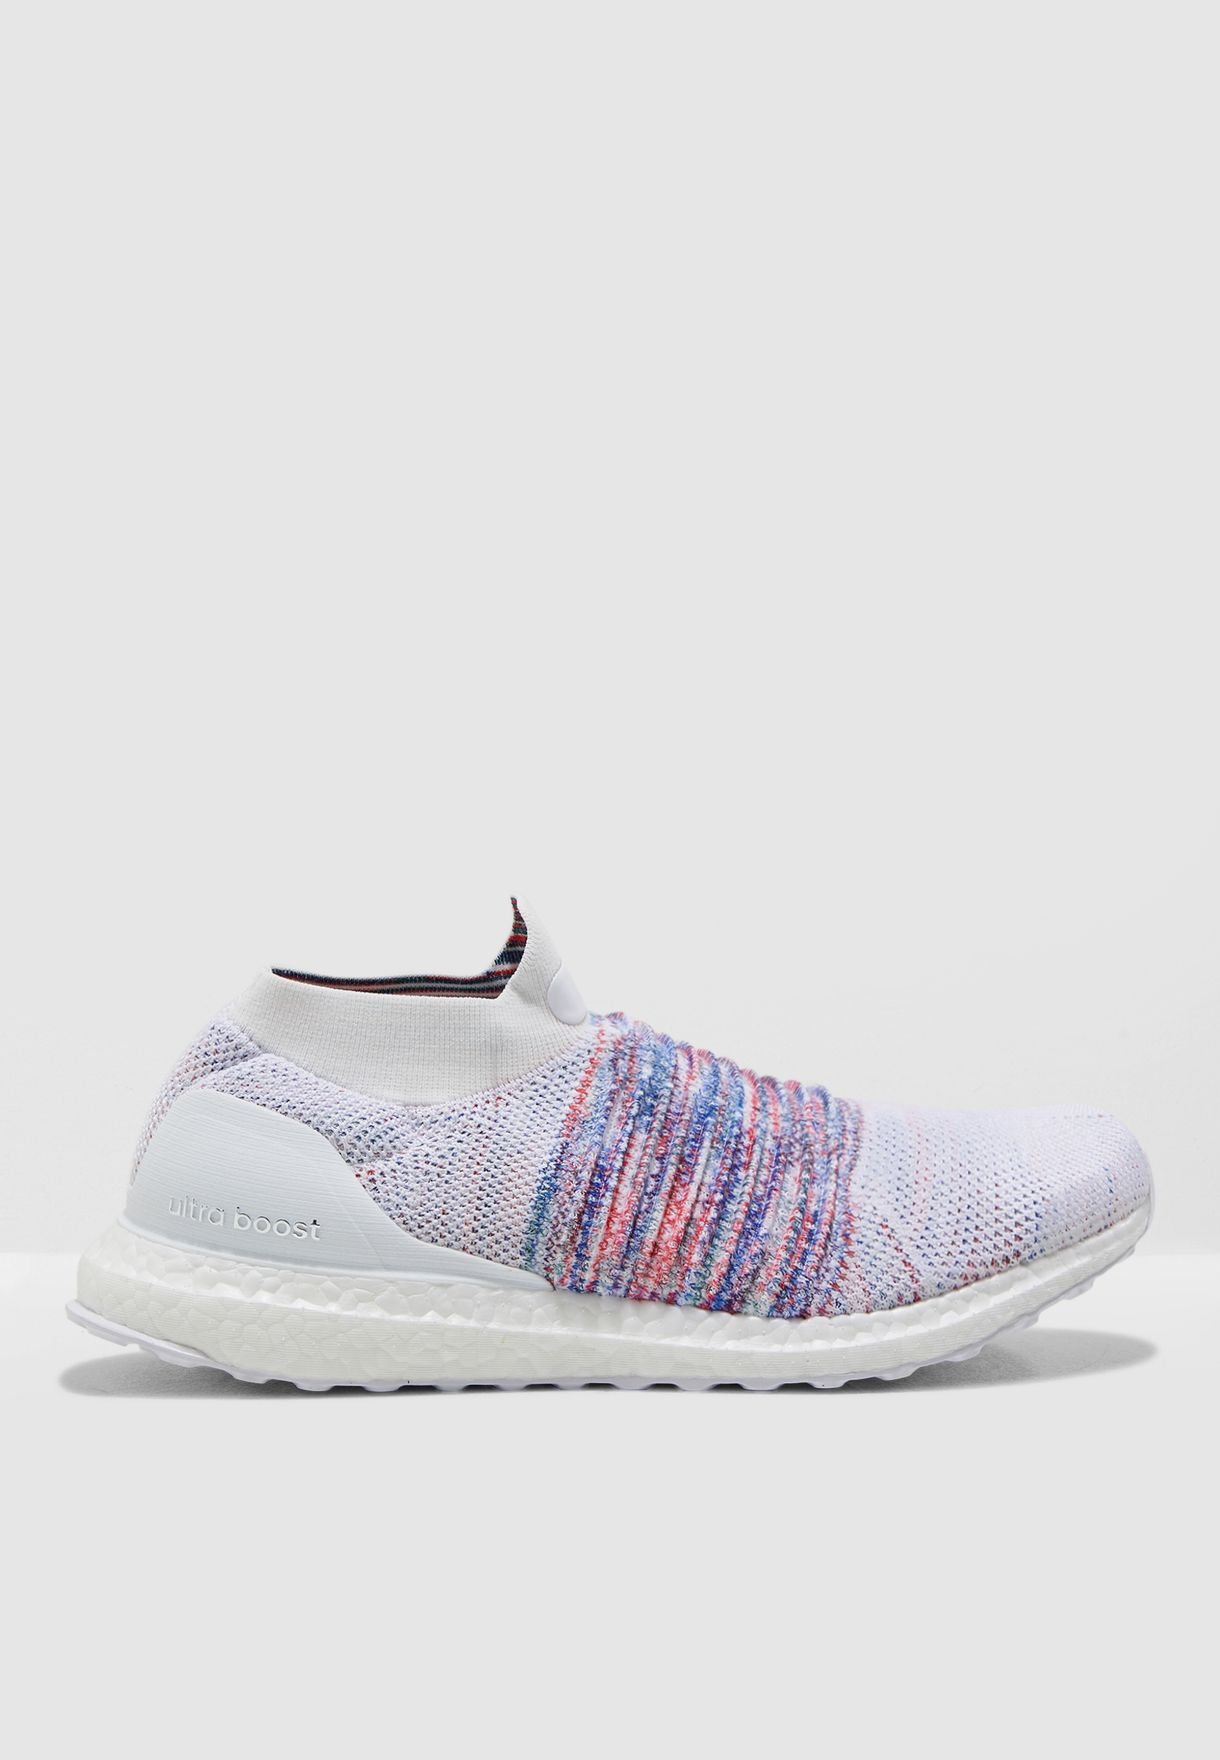 574c107d10c5 Shop adidas multicolor UltraBoost Laceless B37686 for Men in Saudi ...